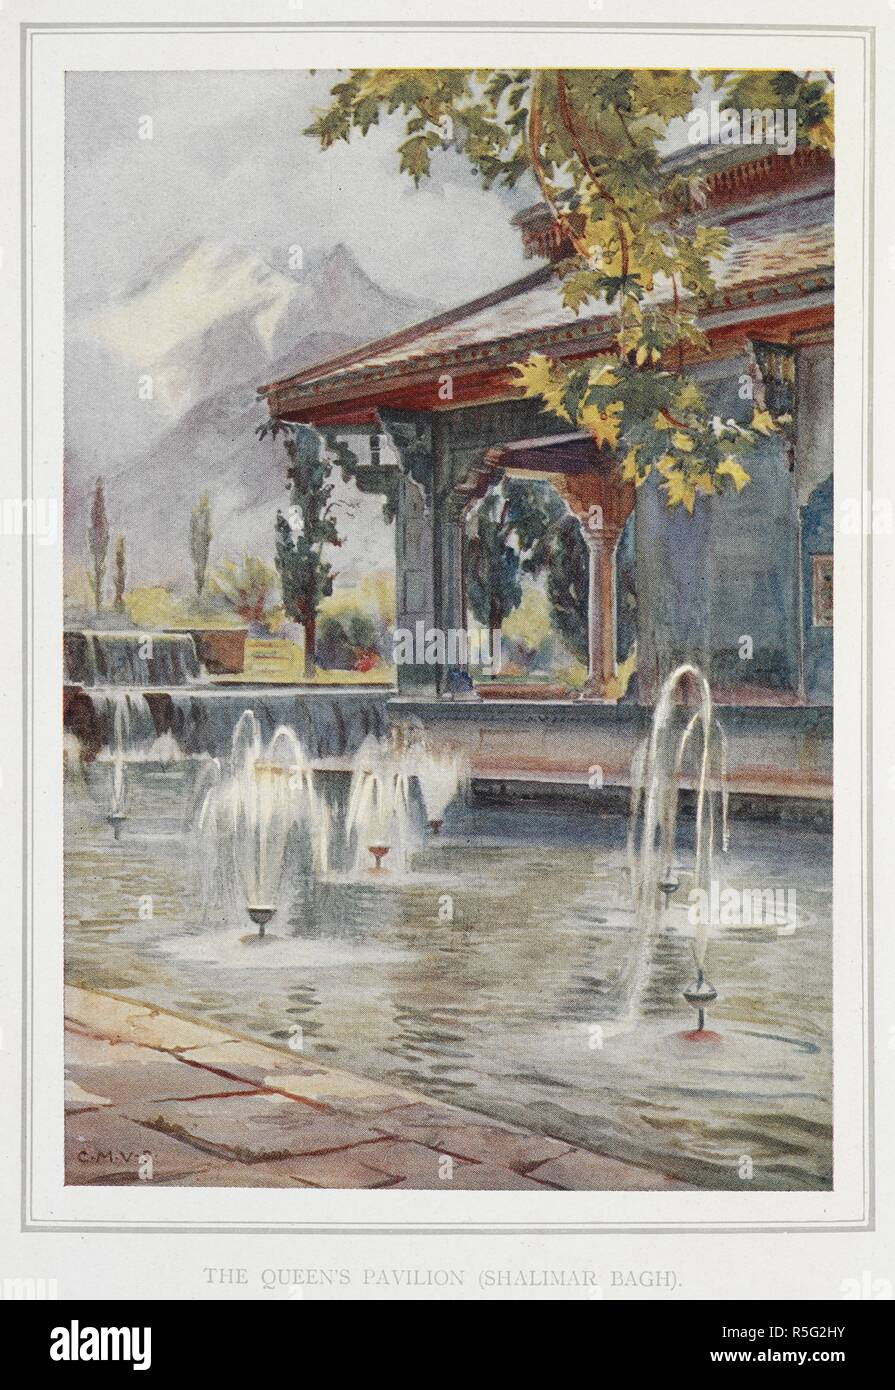 Gardens of the great Mughals 1913